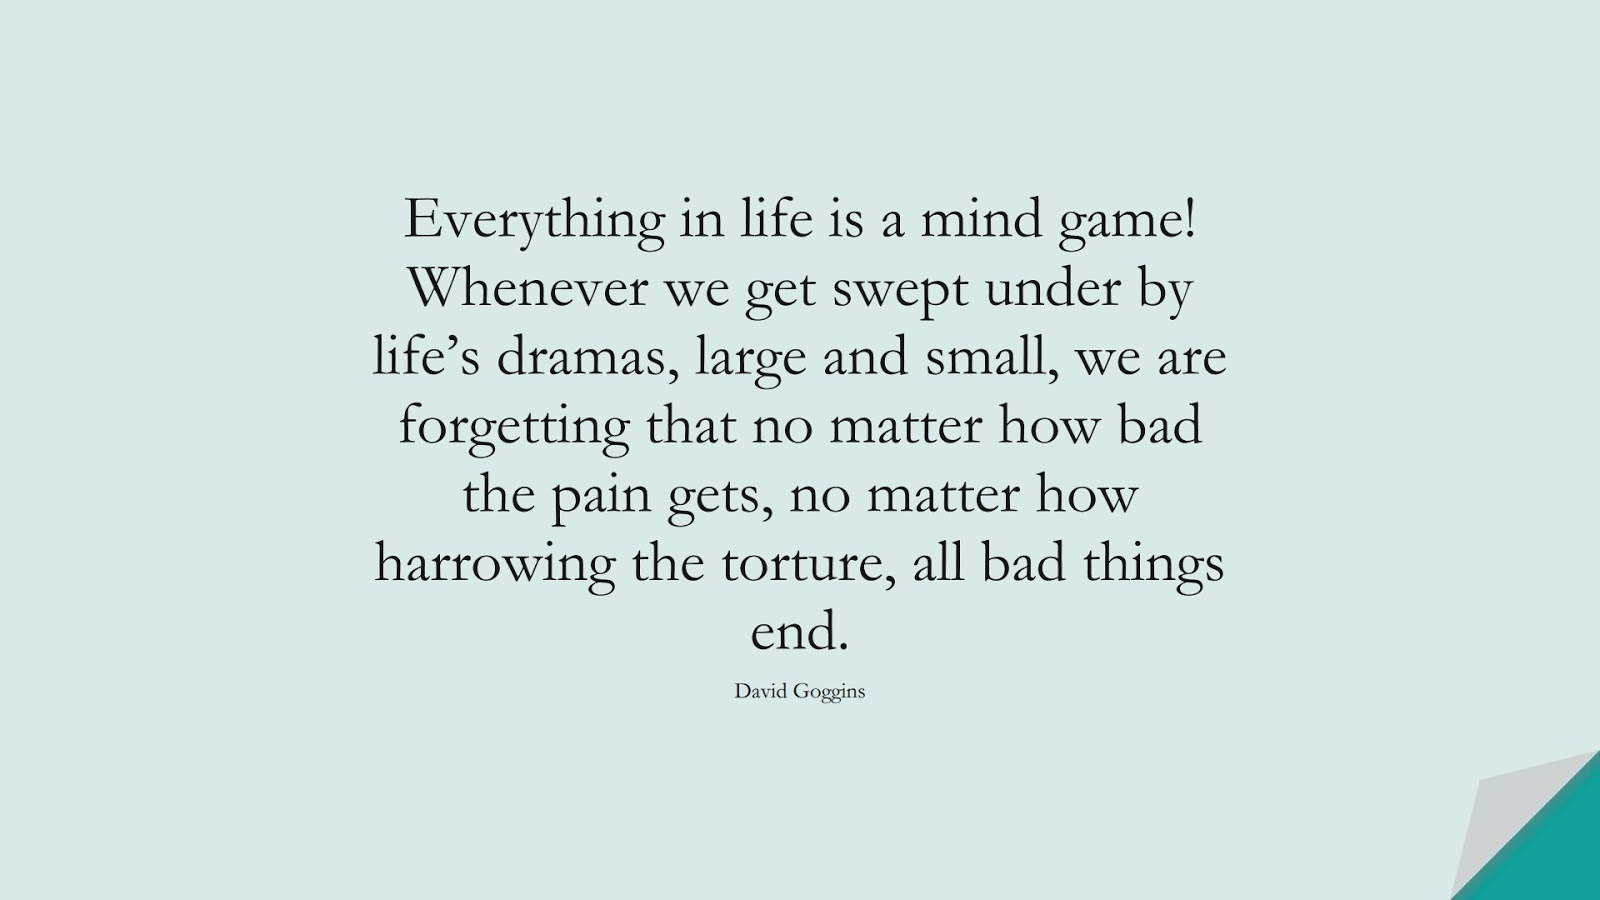 Everything in life is a mind game! Whenever we get swept under by life's dramas, large and small, we are forgetting that no matter how bad the pain gets, no matter how harrowing the torture, all bad things end. (David Goggins);  #EncouragingQuotes